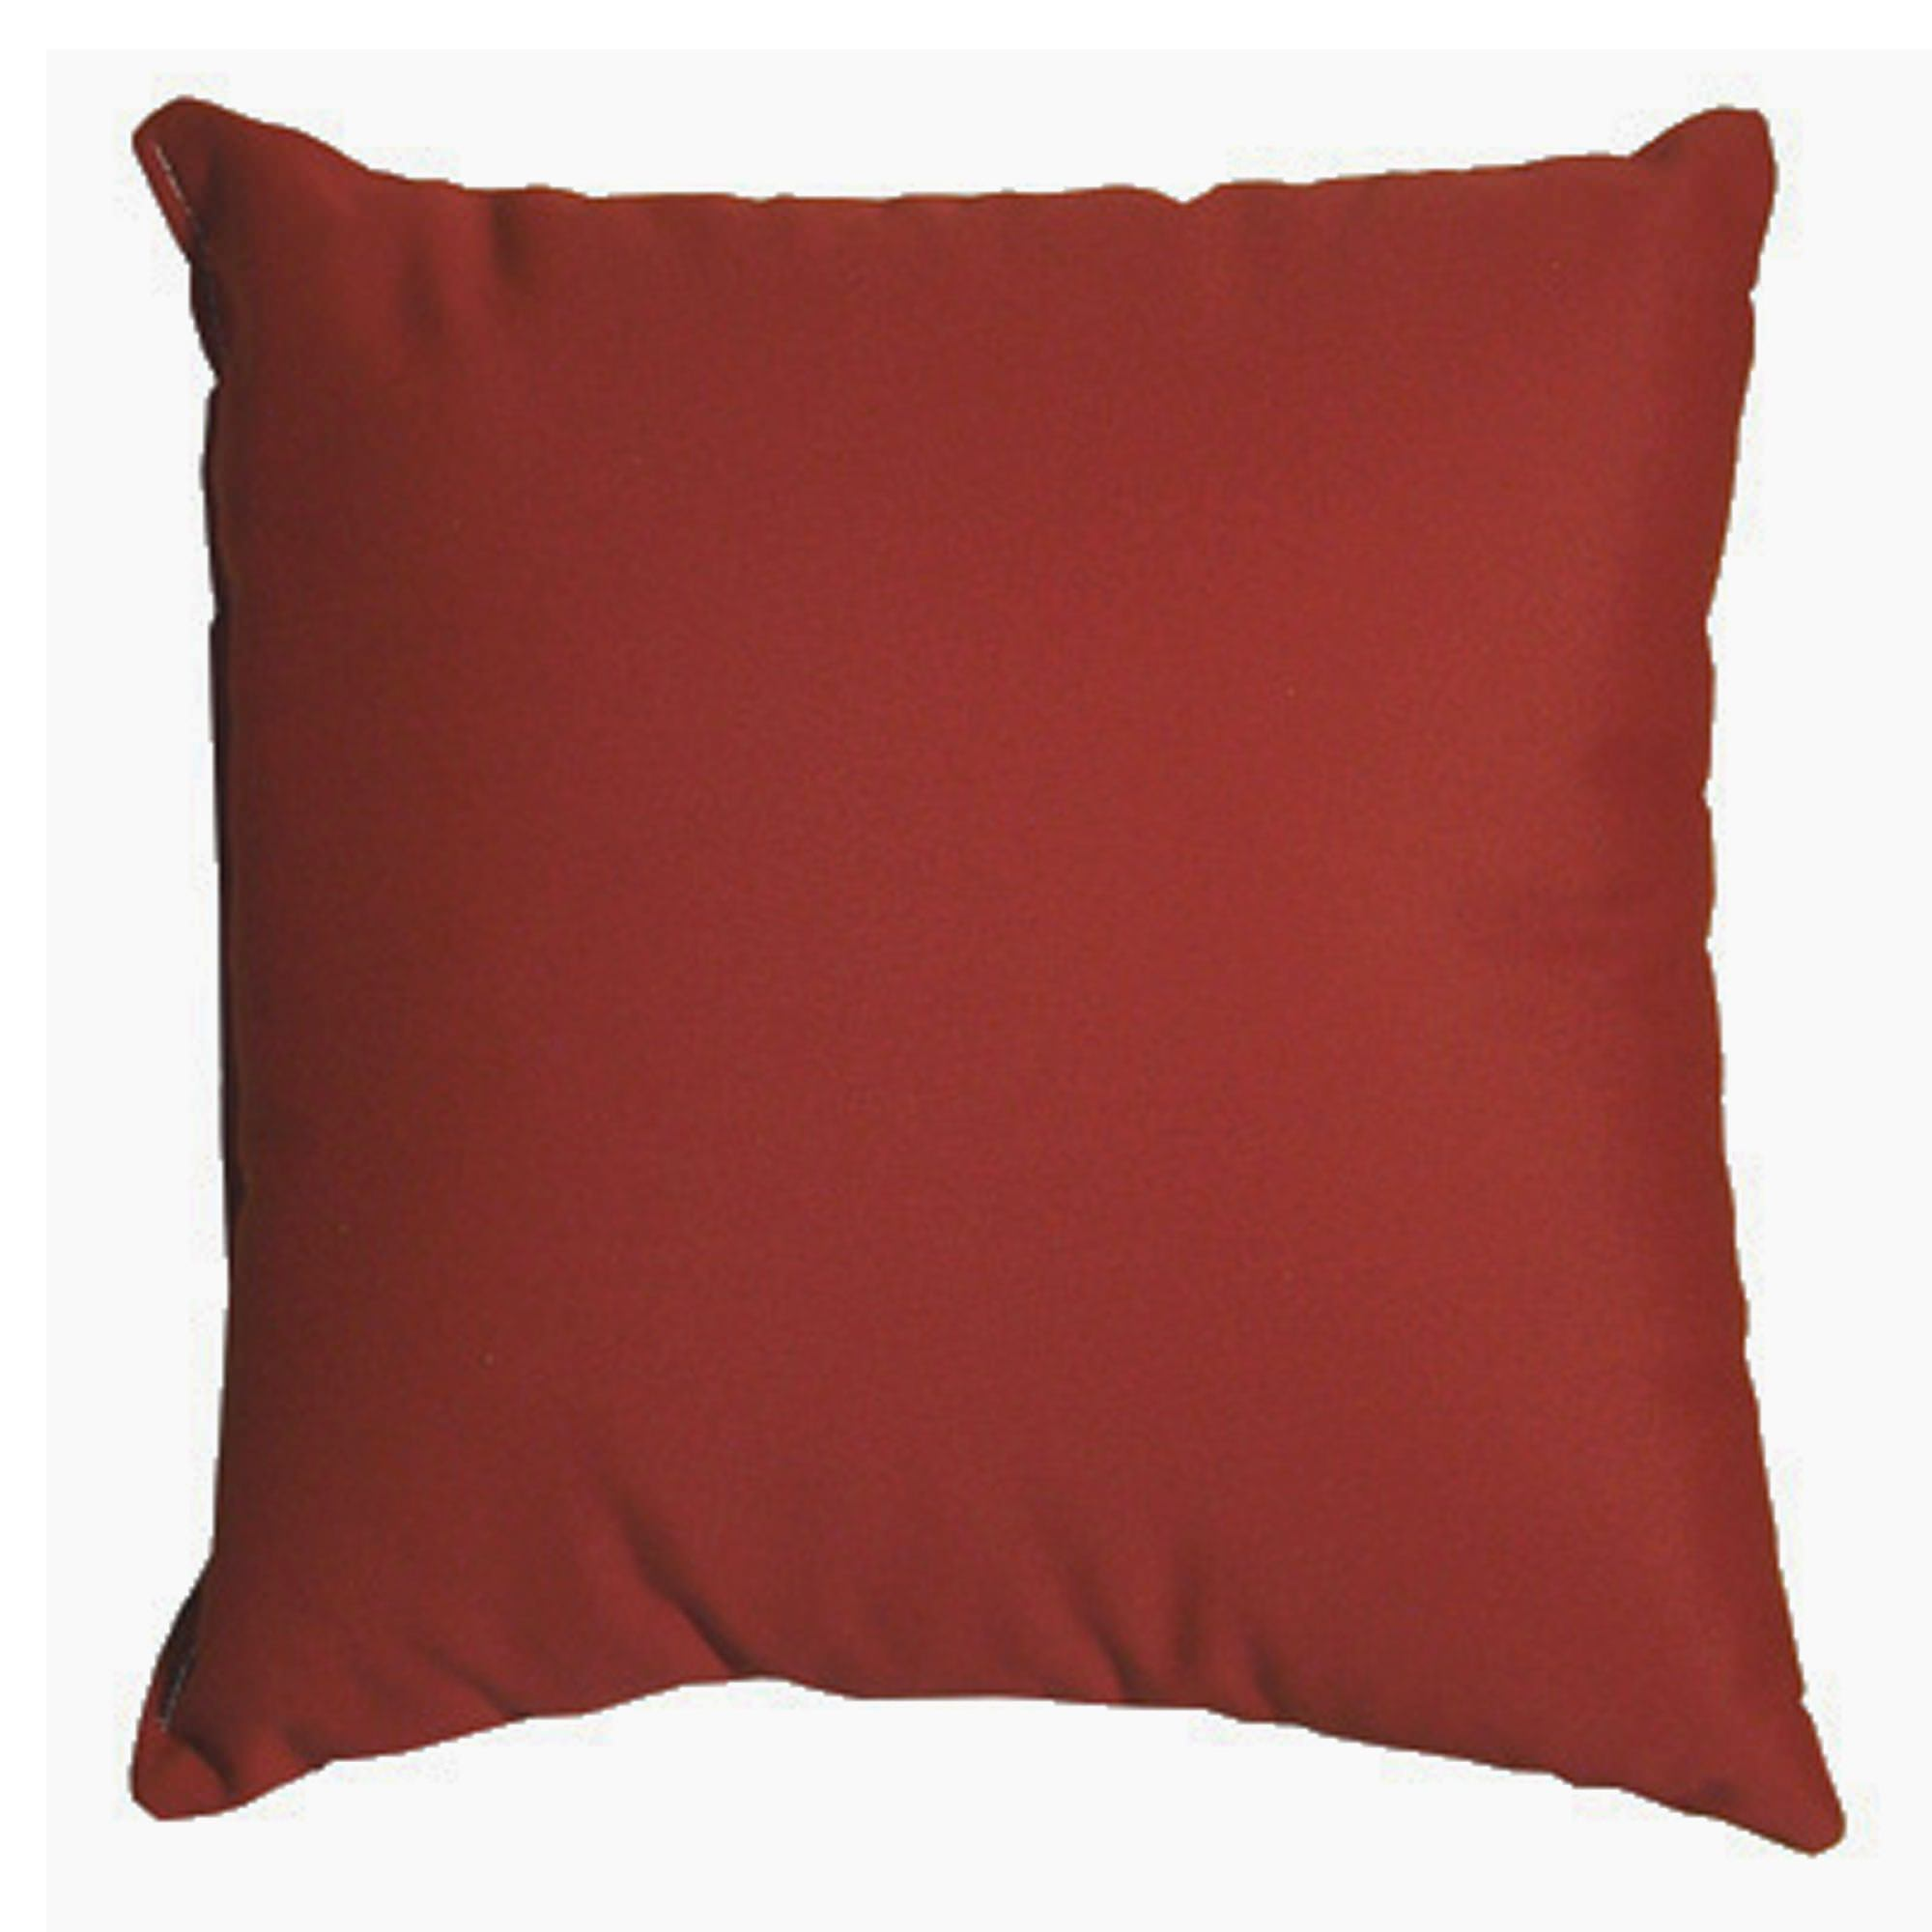 Burgundy Sunbrella Outdoor Throw Pillow